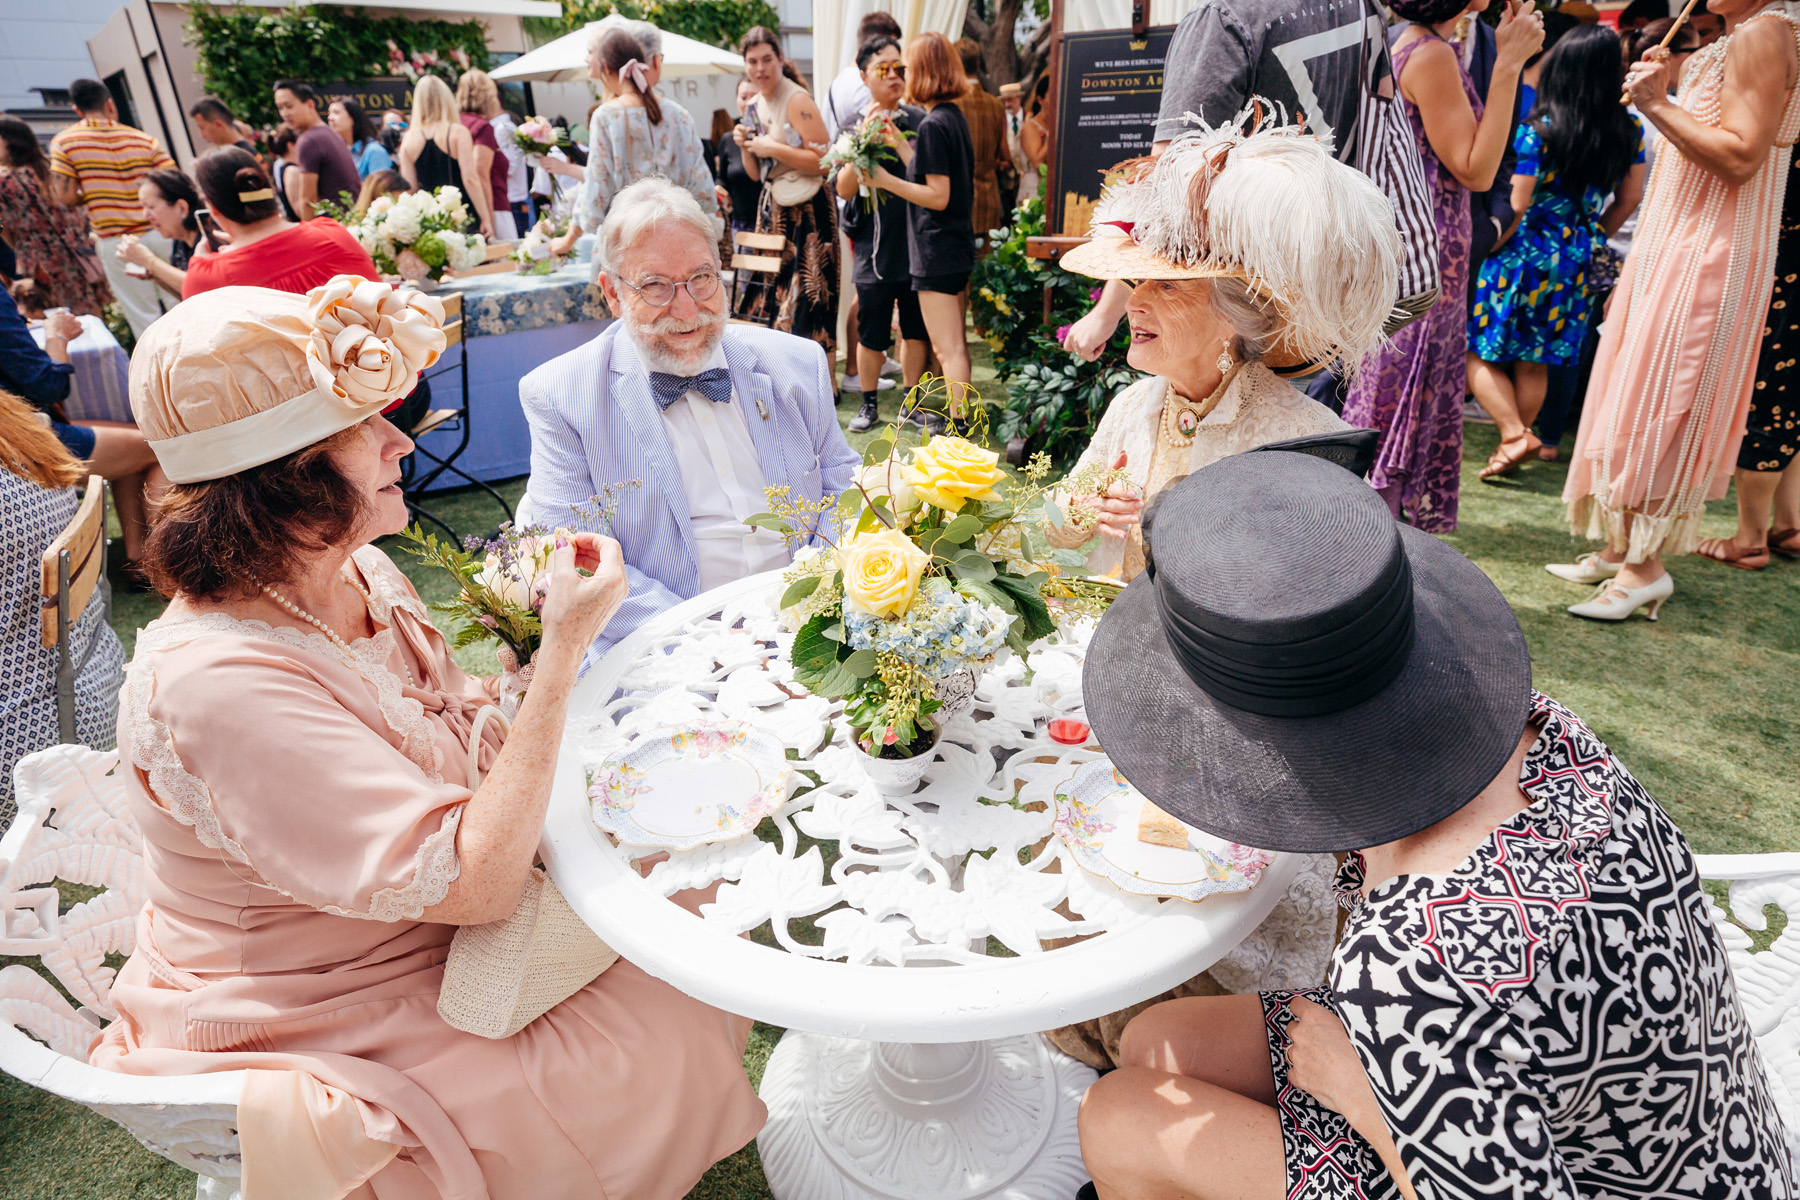 event production company creates downton abbey tea party